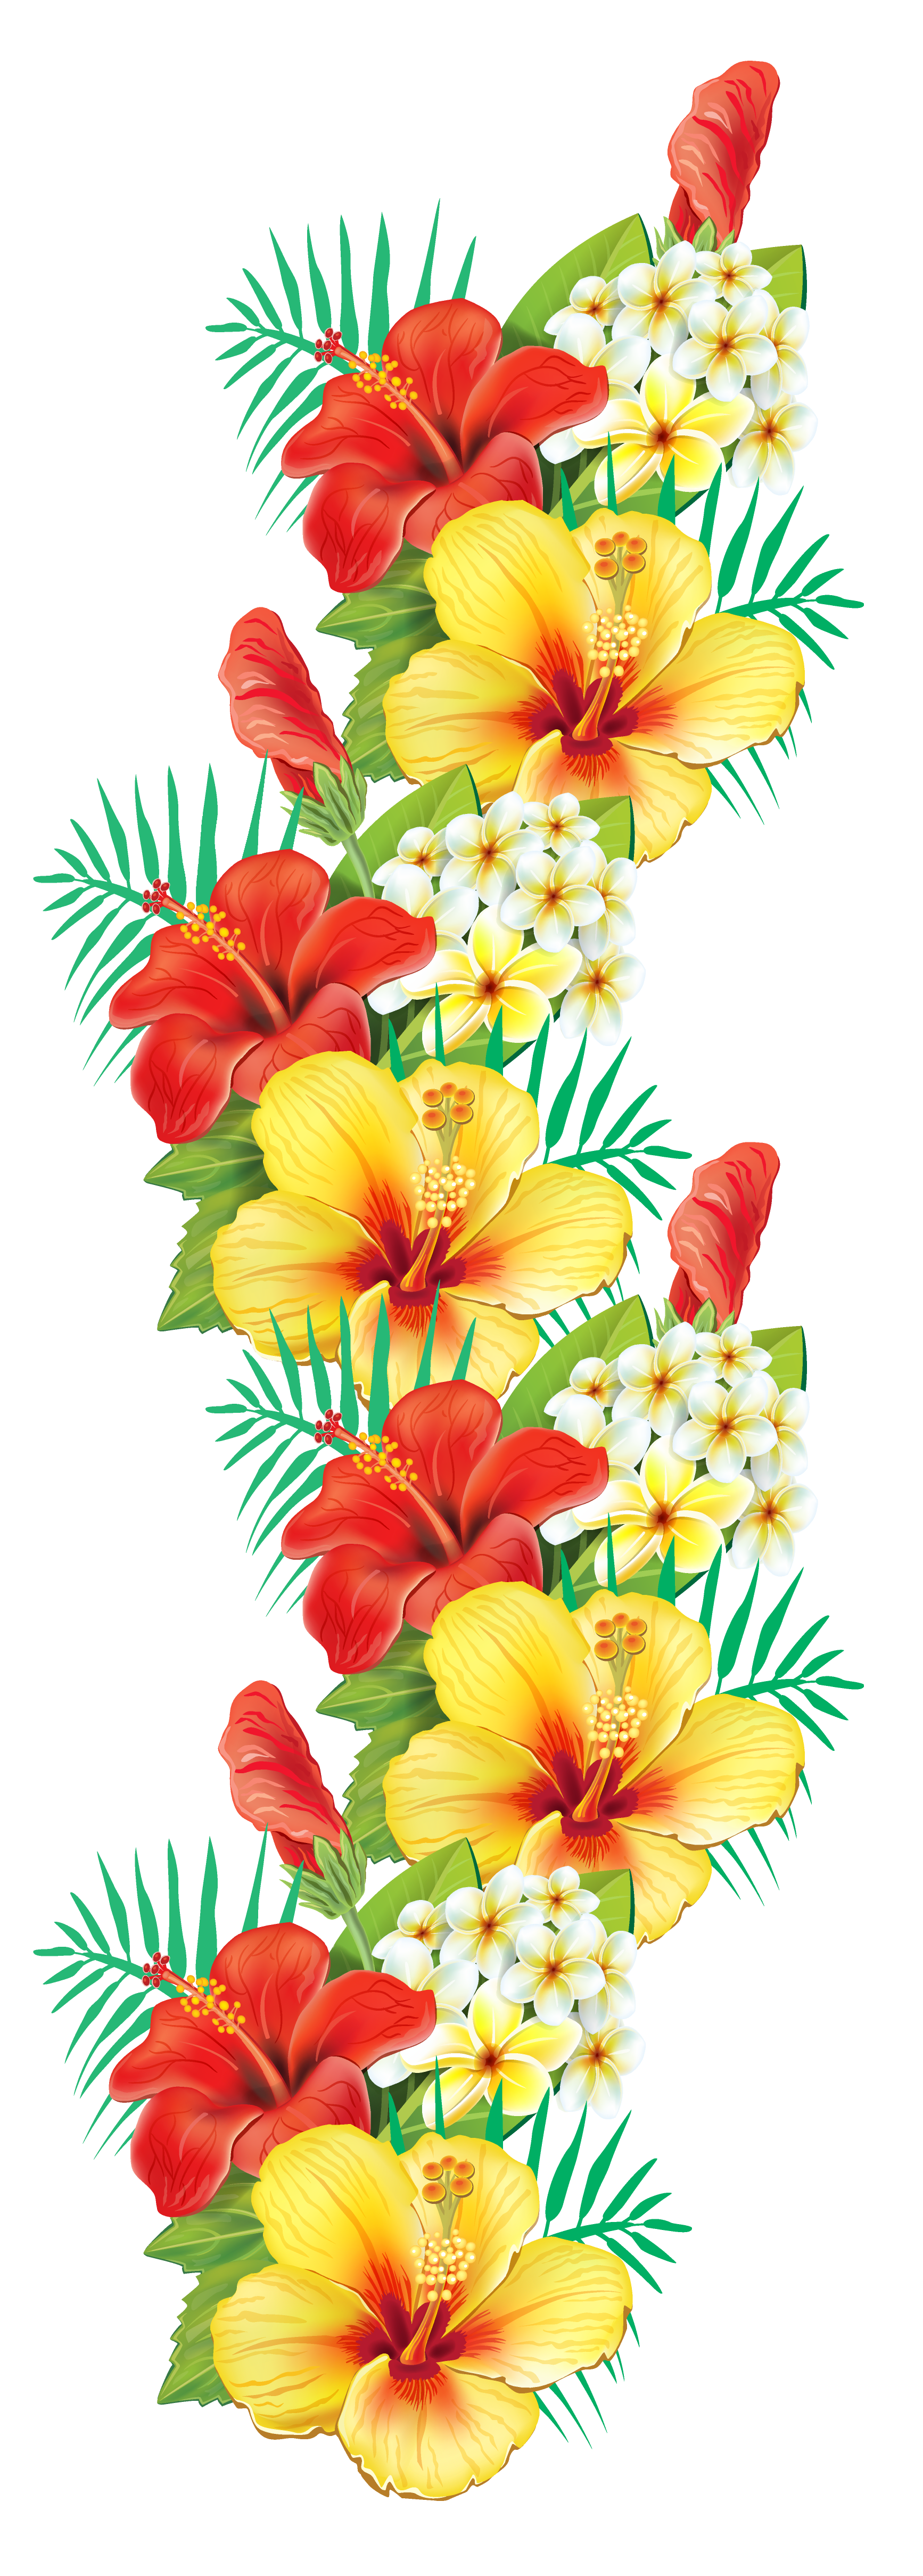 Pin by on pinterest exotic flowers and craft exotic flowers backgrounds backdrops izmirmasajfo Images